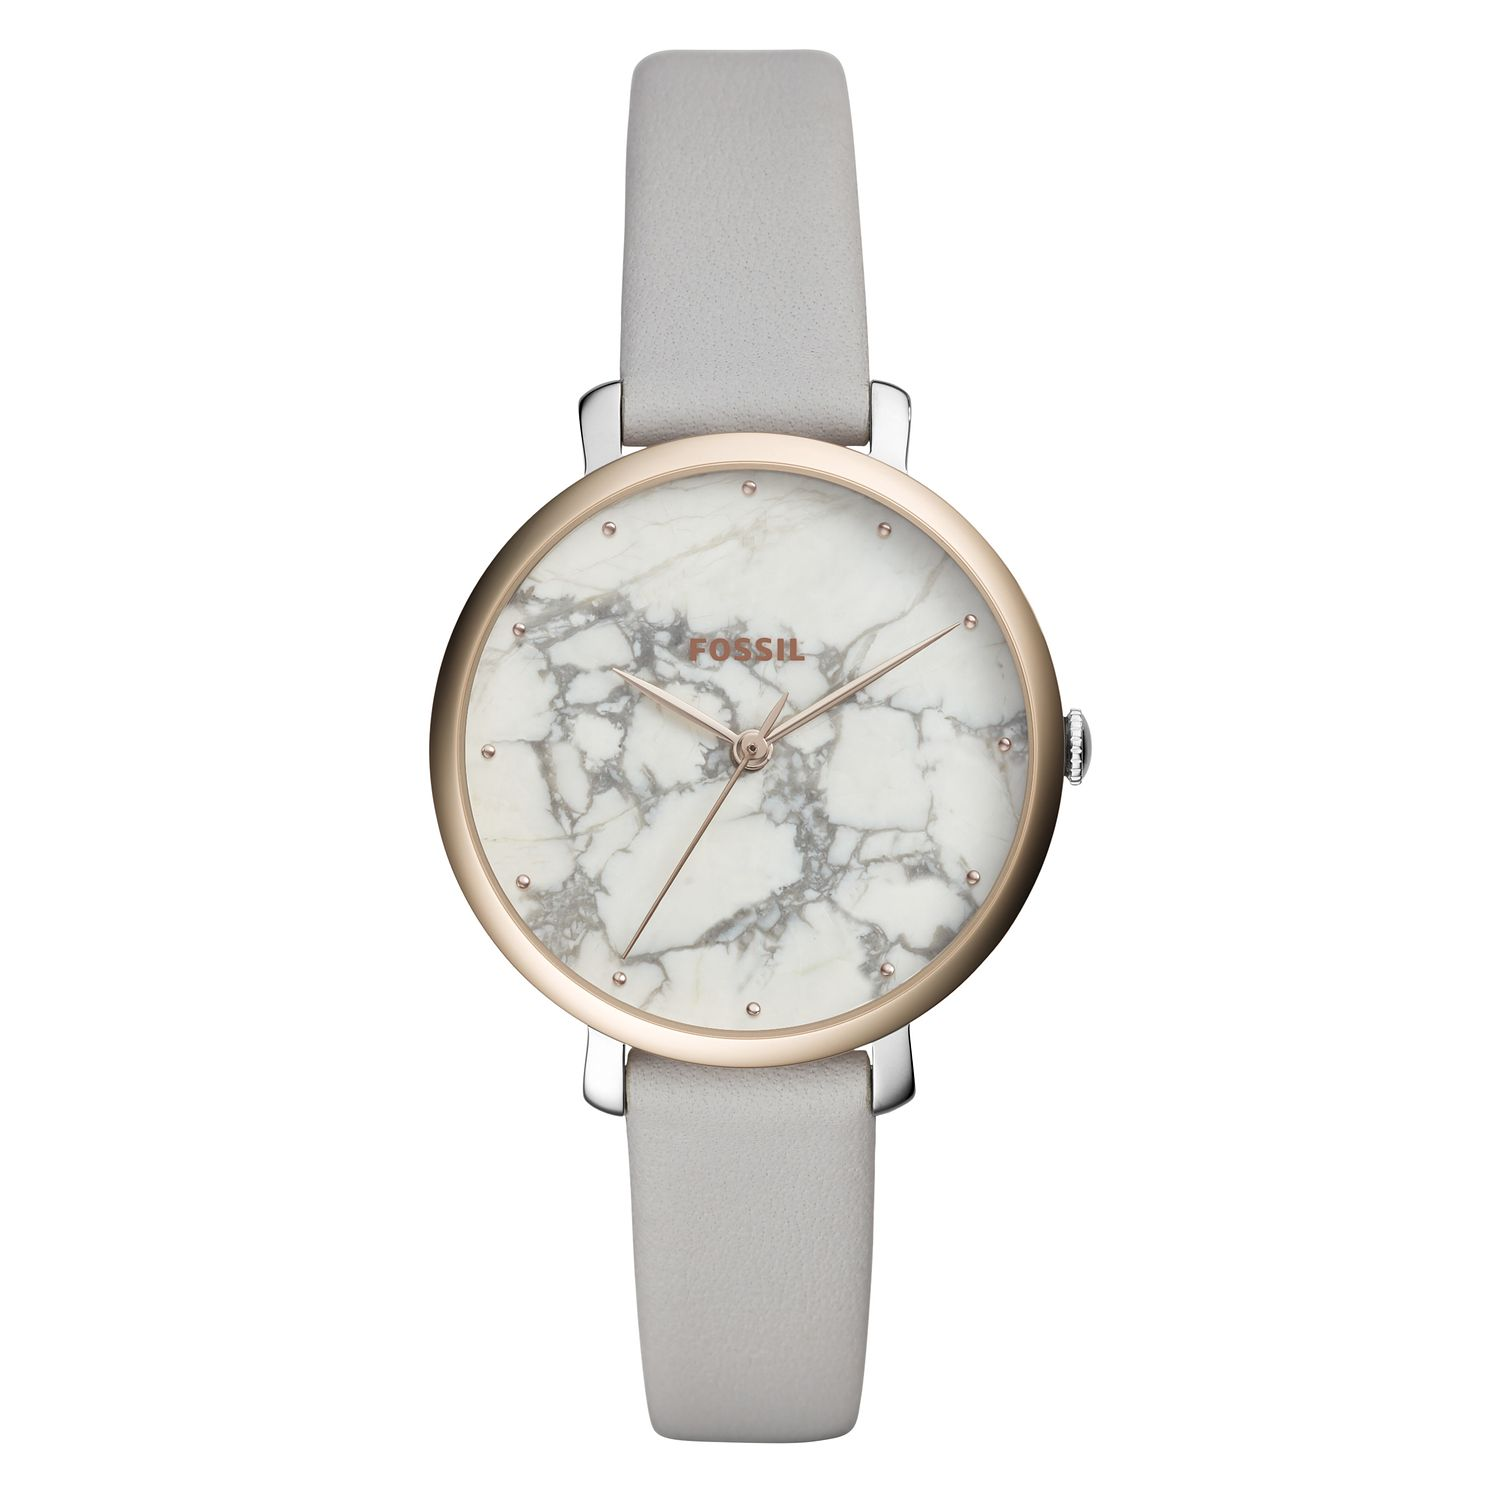 Fossil Ladies' White Marble Dial Grey Leather Strap Watch - Product number 9103295